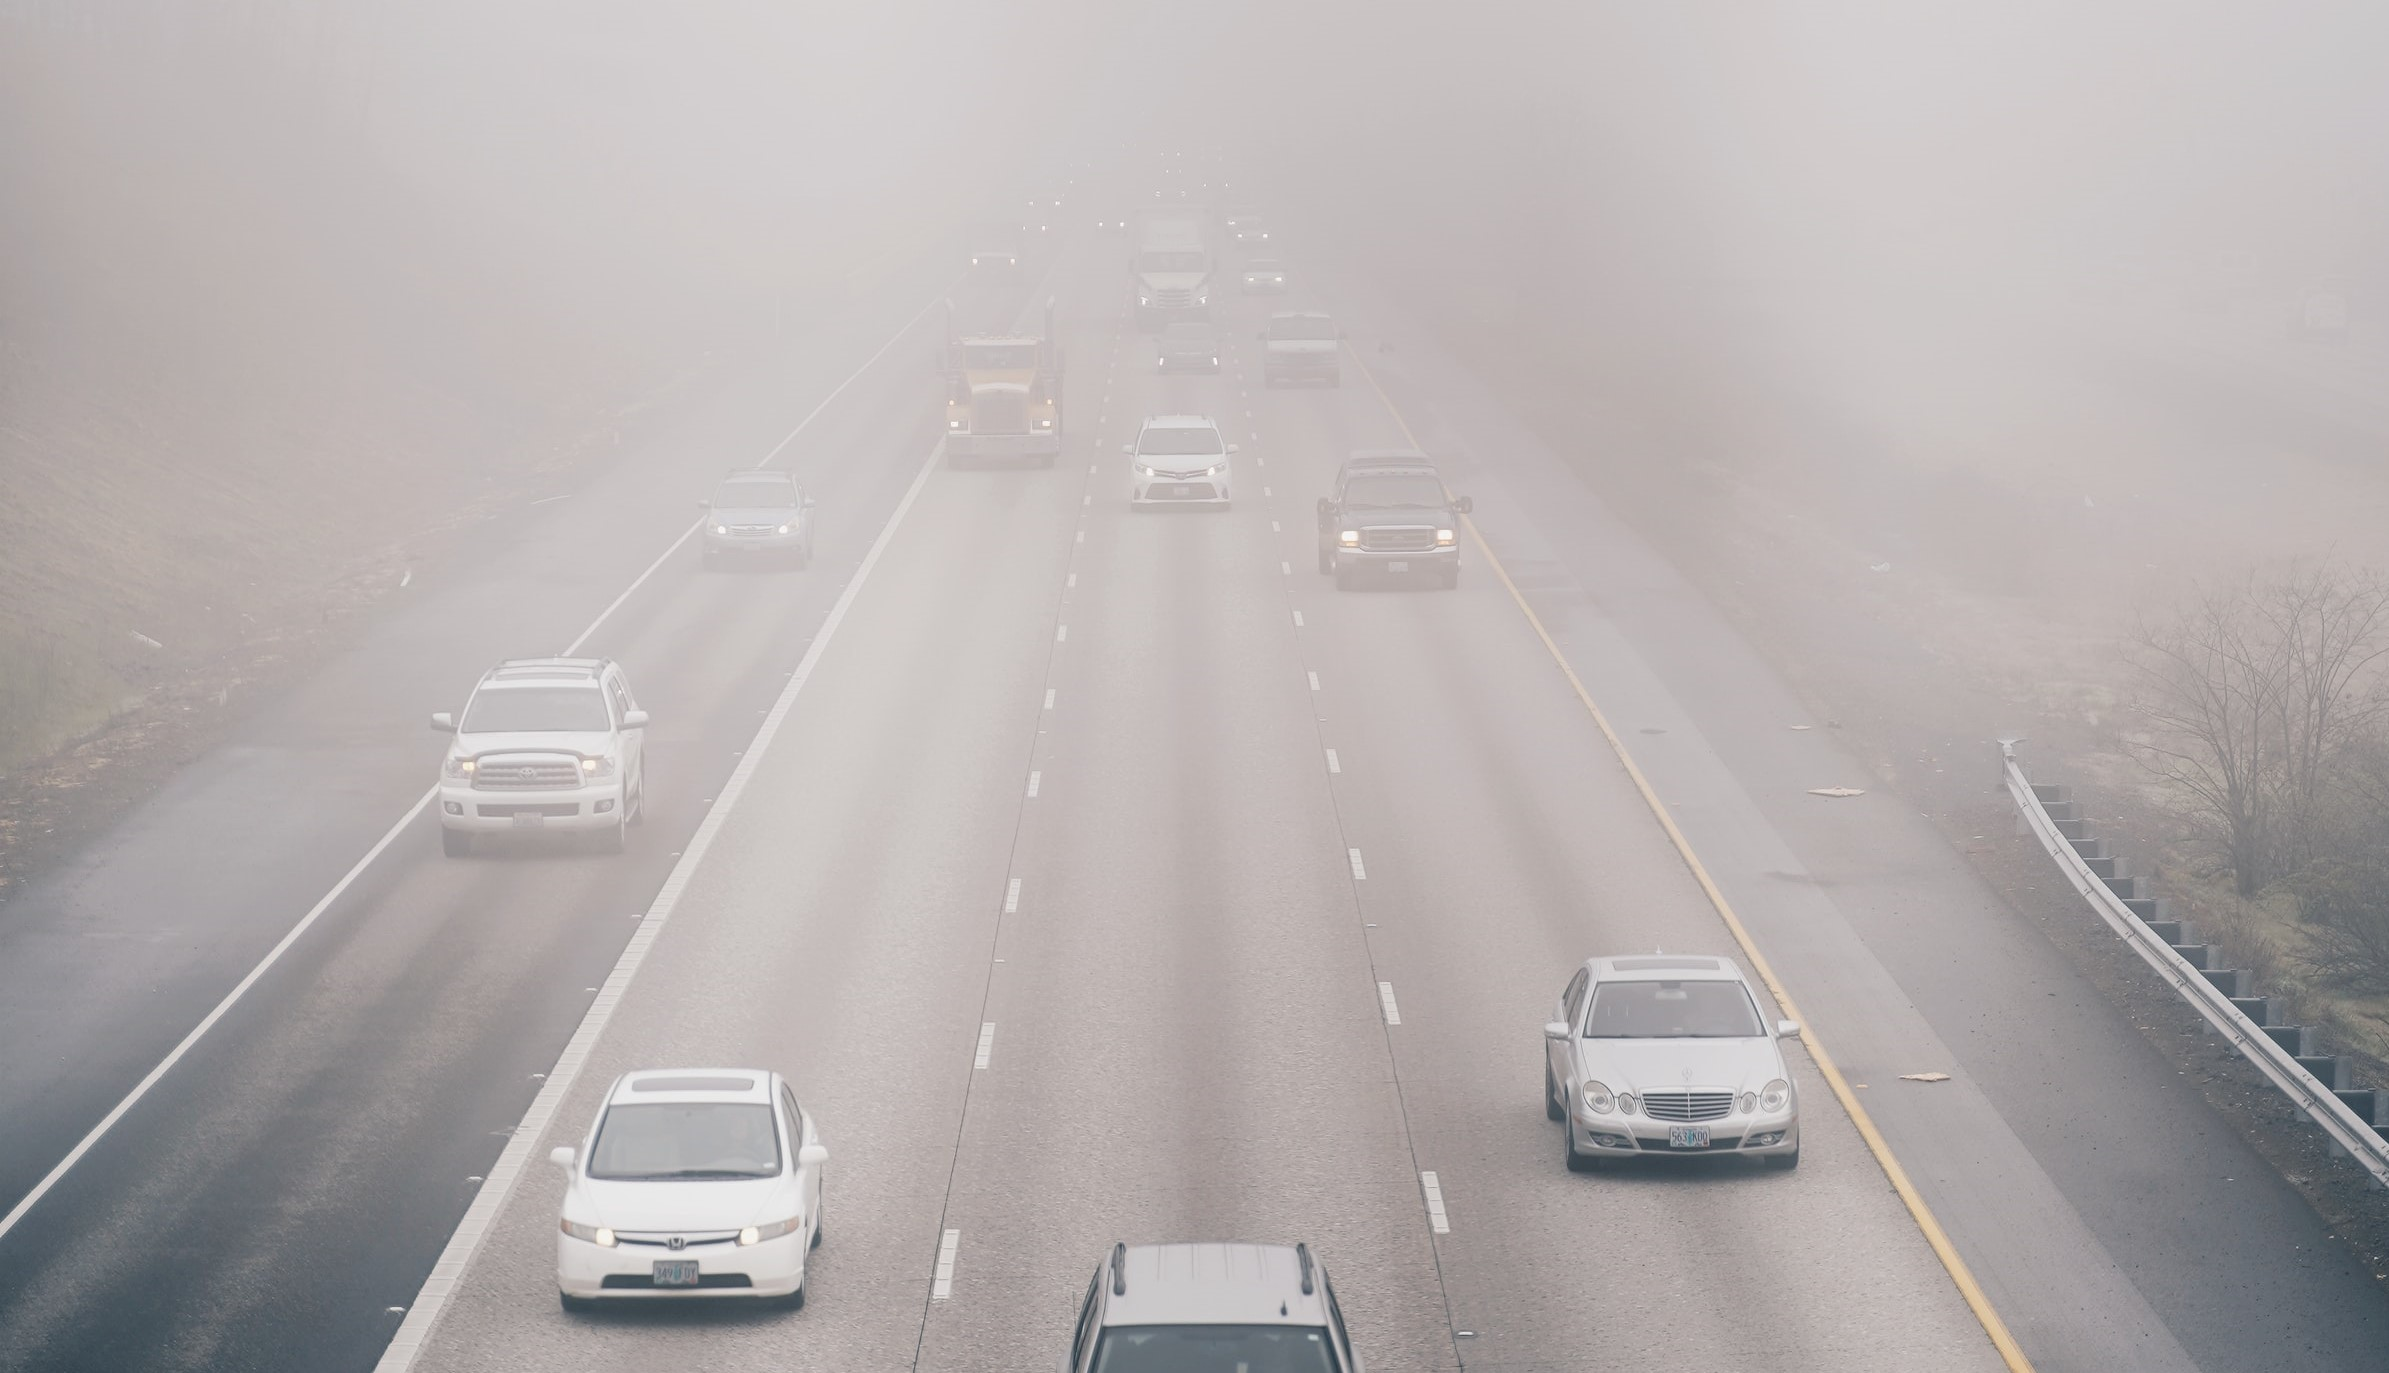 Govt asks for ideas to reduce emissions – Expert Reaction